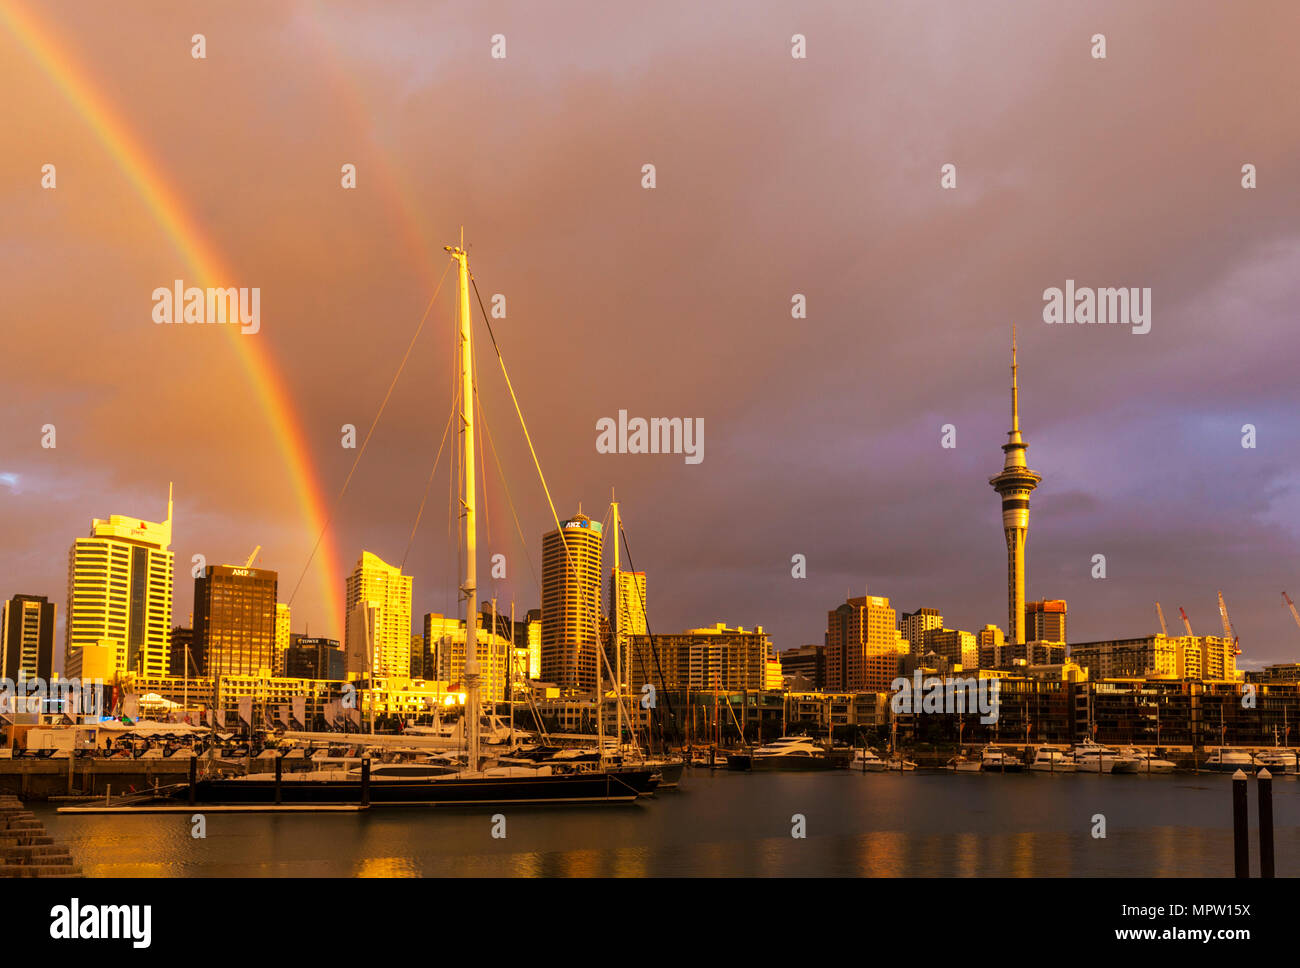 new zealand auckland new zealand north island rainbow after rain storm over auckland harbour waterfront weird colour sky stormy sky auckland nz - Stock Image